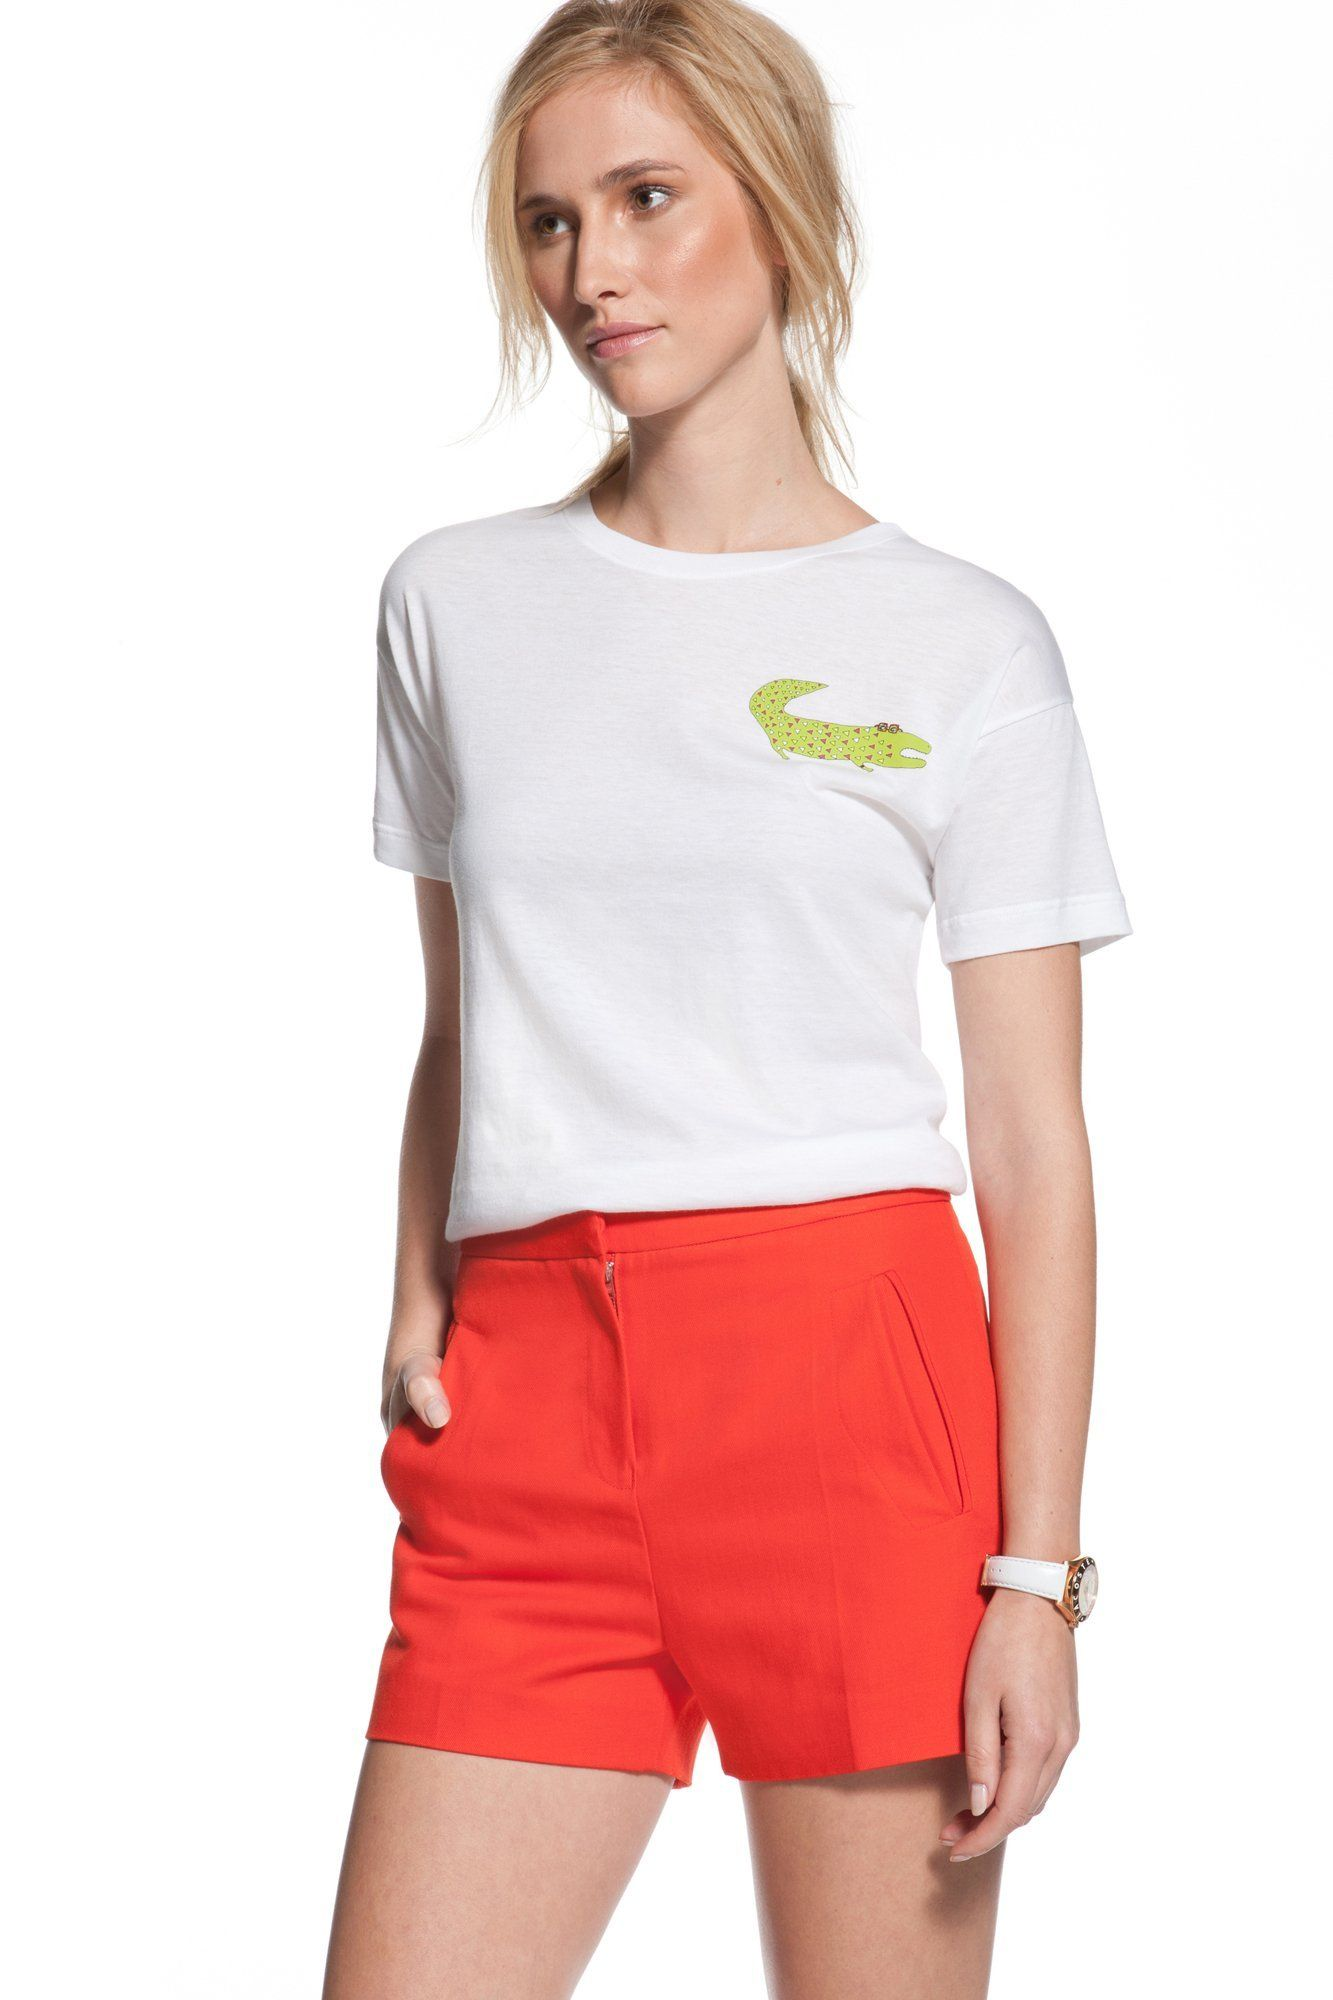 Yes, sir, that's my crocodile!  In collaboration with Virginia Kraljevic, Lacoste presents this T-shirt featuring the brand's eponymous crocodile. A touch of humour which will pep up to a Sportswear wardrobe.   www.lacoste.com #lacoste #fashion #spring #summer #2012 #collaboration #crocodile #redesign